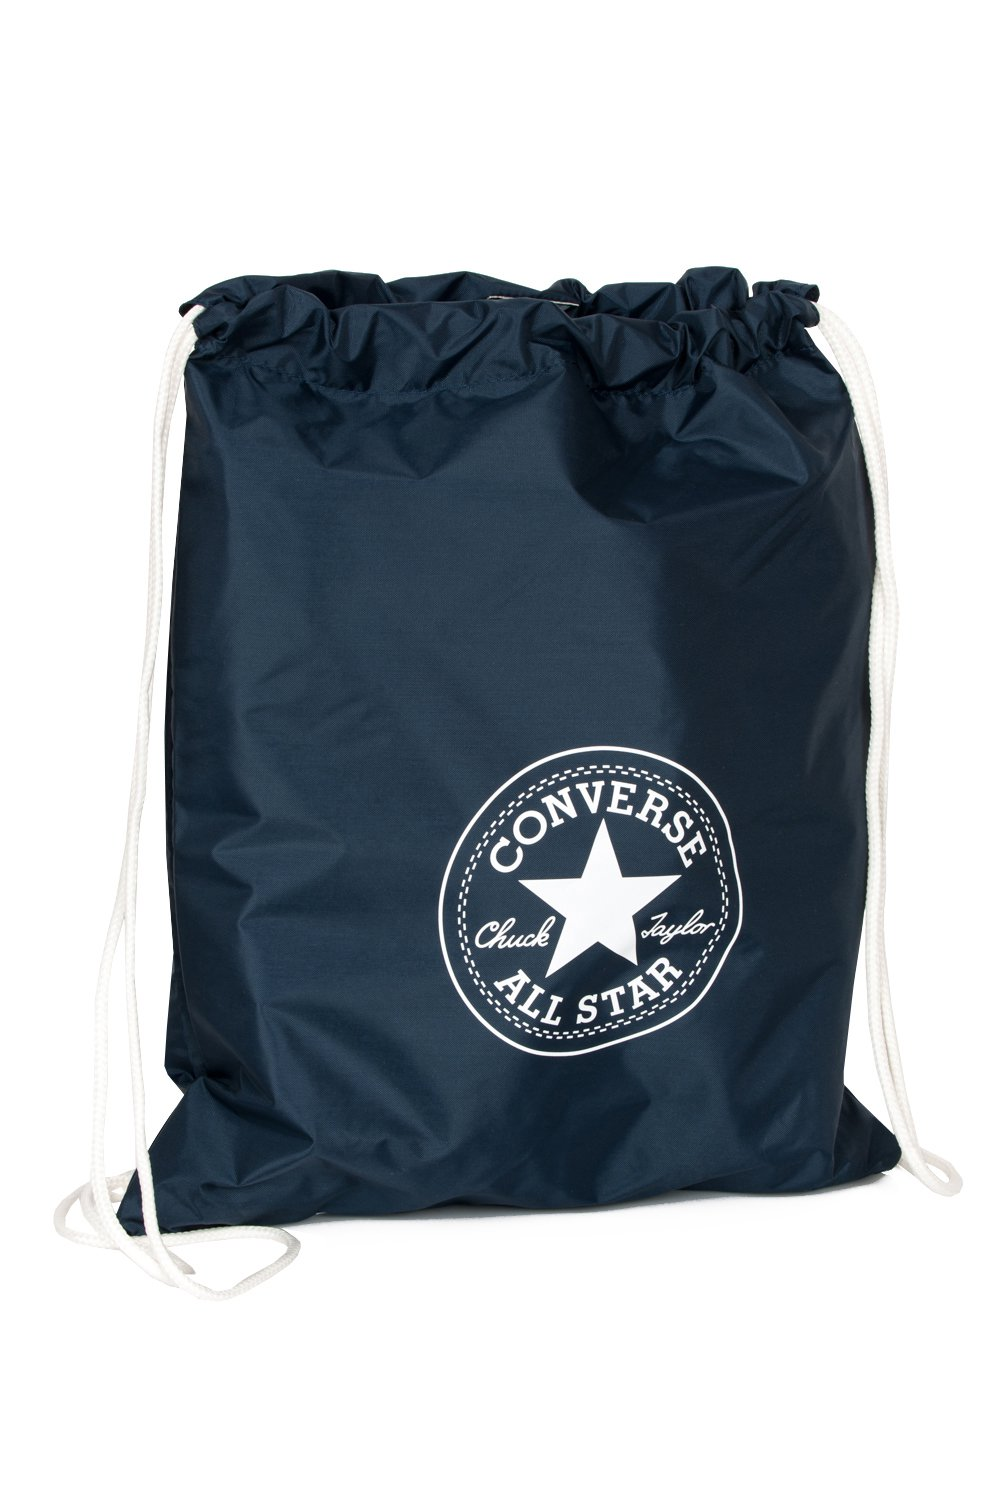 Imagine Rucsac Converse Bleumarin Gym Sack Playmaker 410667